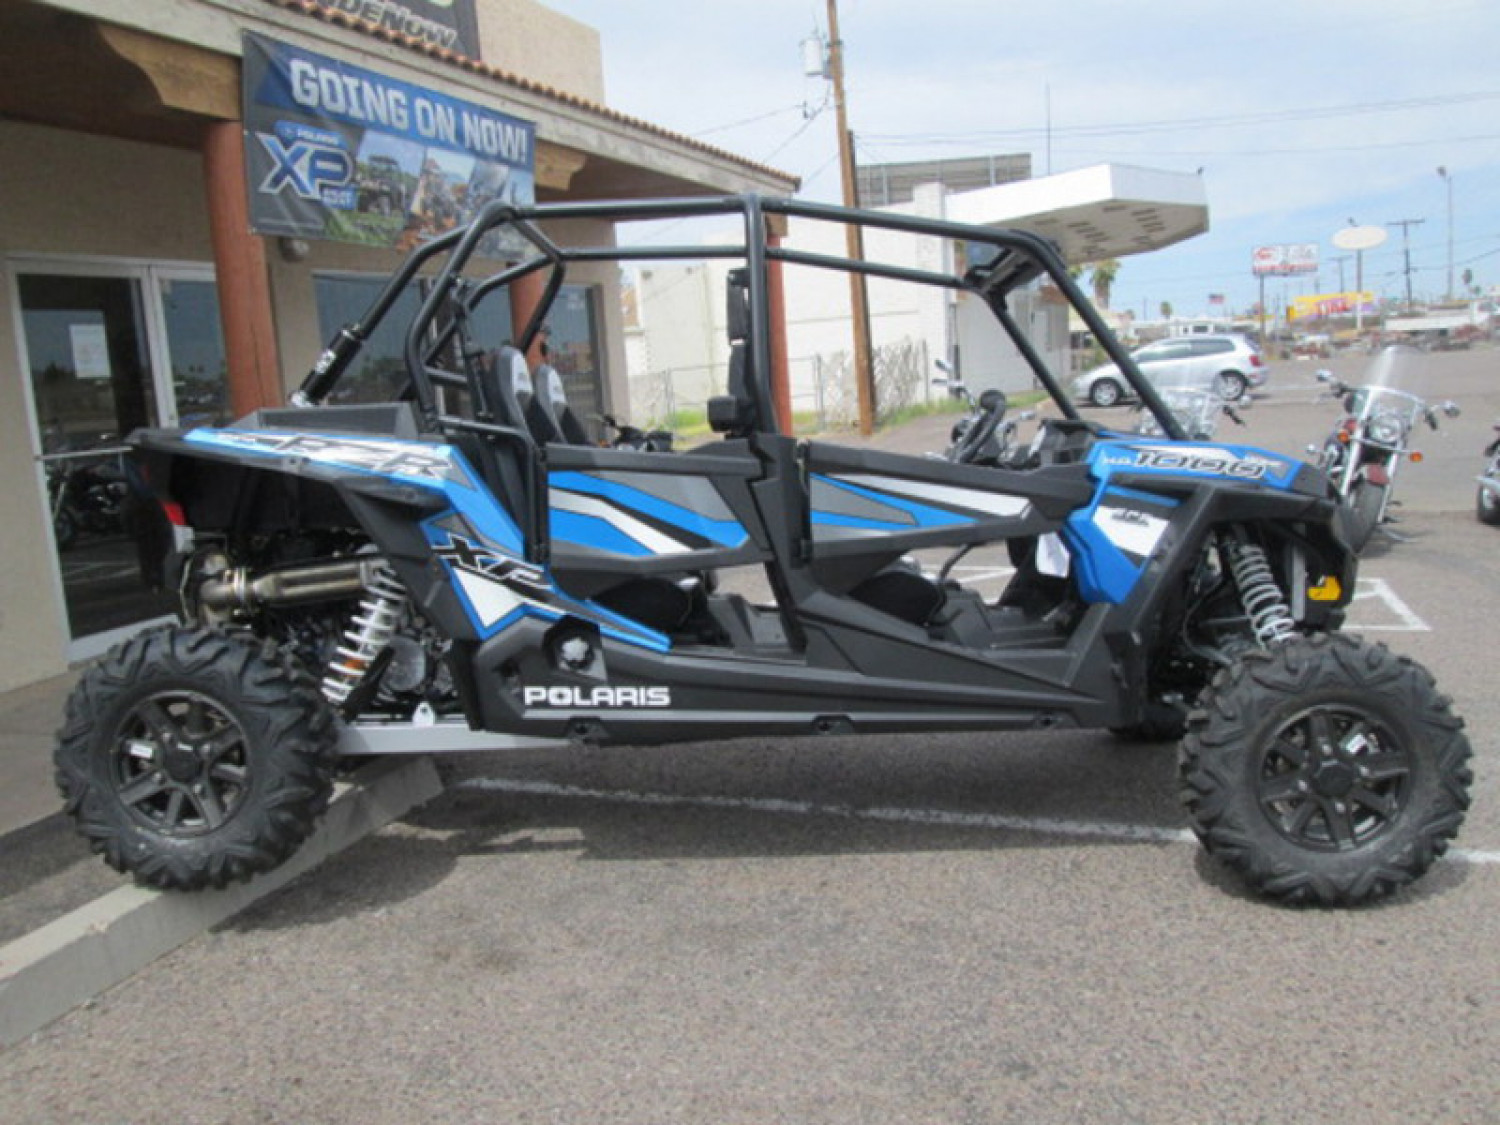 2016 Polaris RZR 1000 BLUE RENTAL